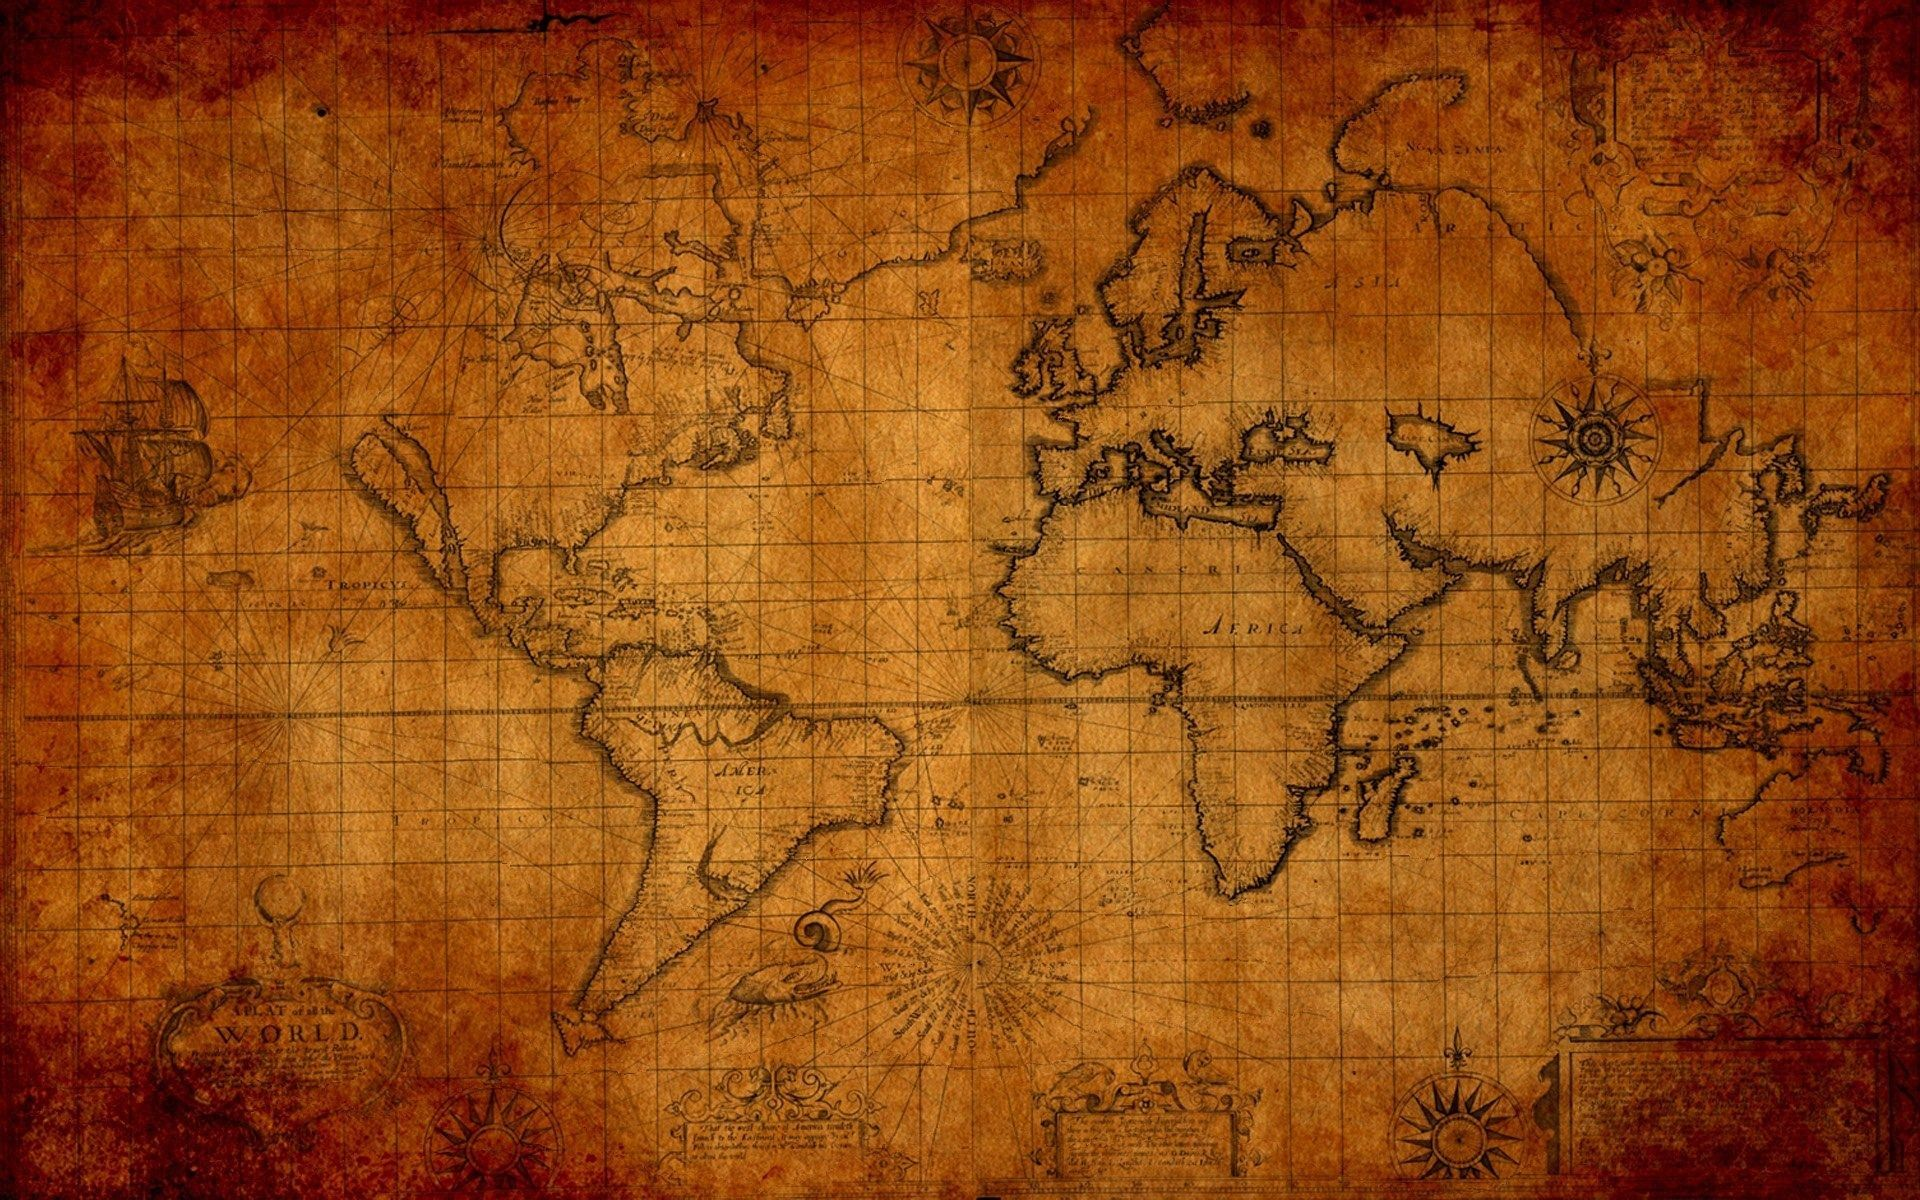 Antique map wallpaper for desktop ololoshenka pinterest antique map wallpaper for desktop gumiabroncs Choice Image